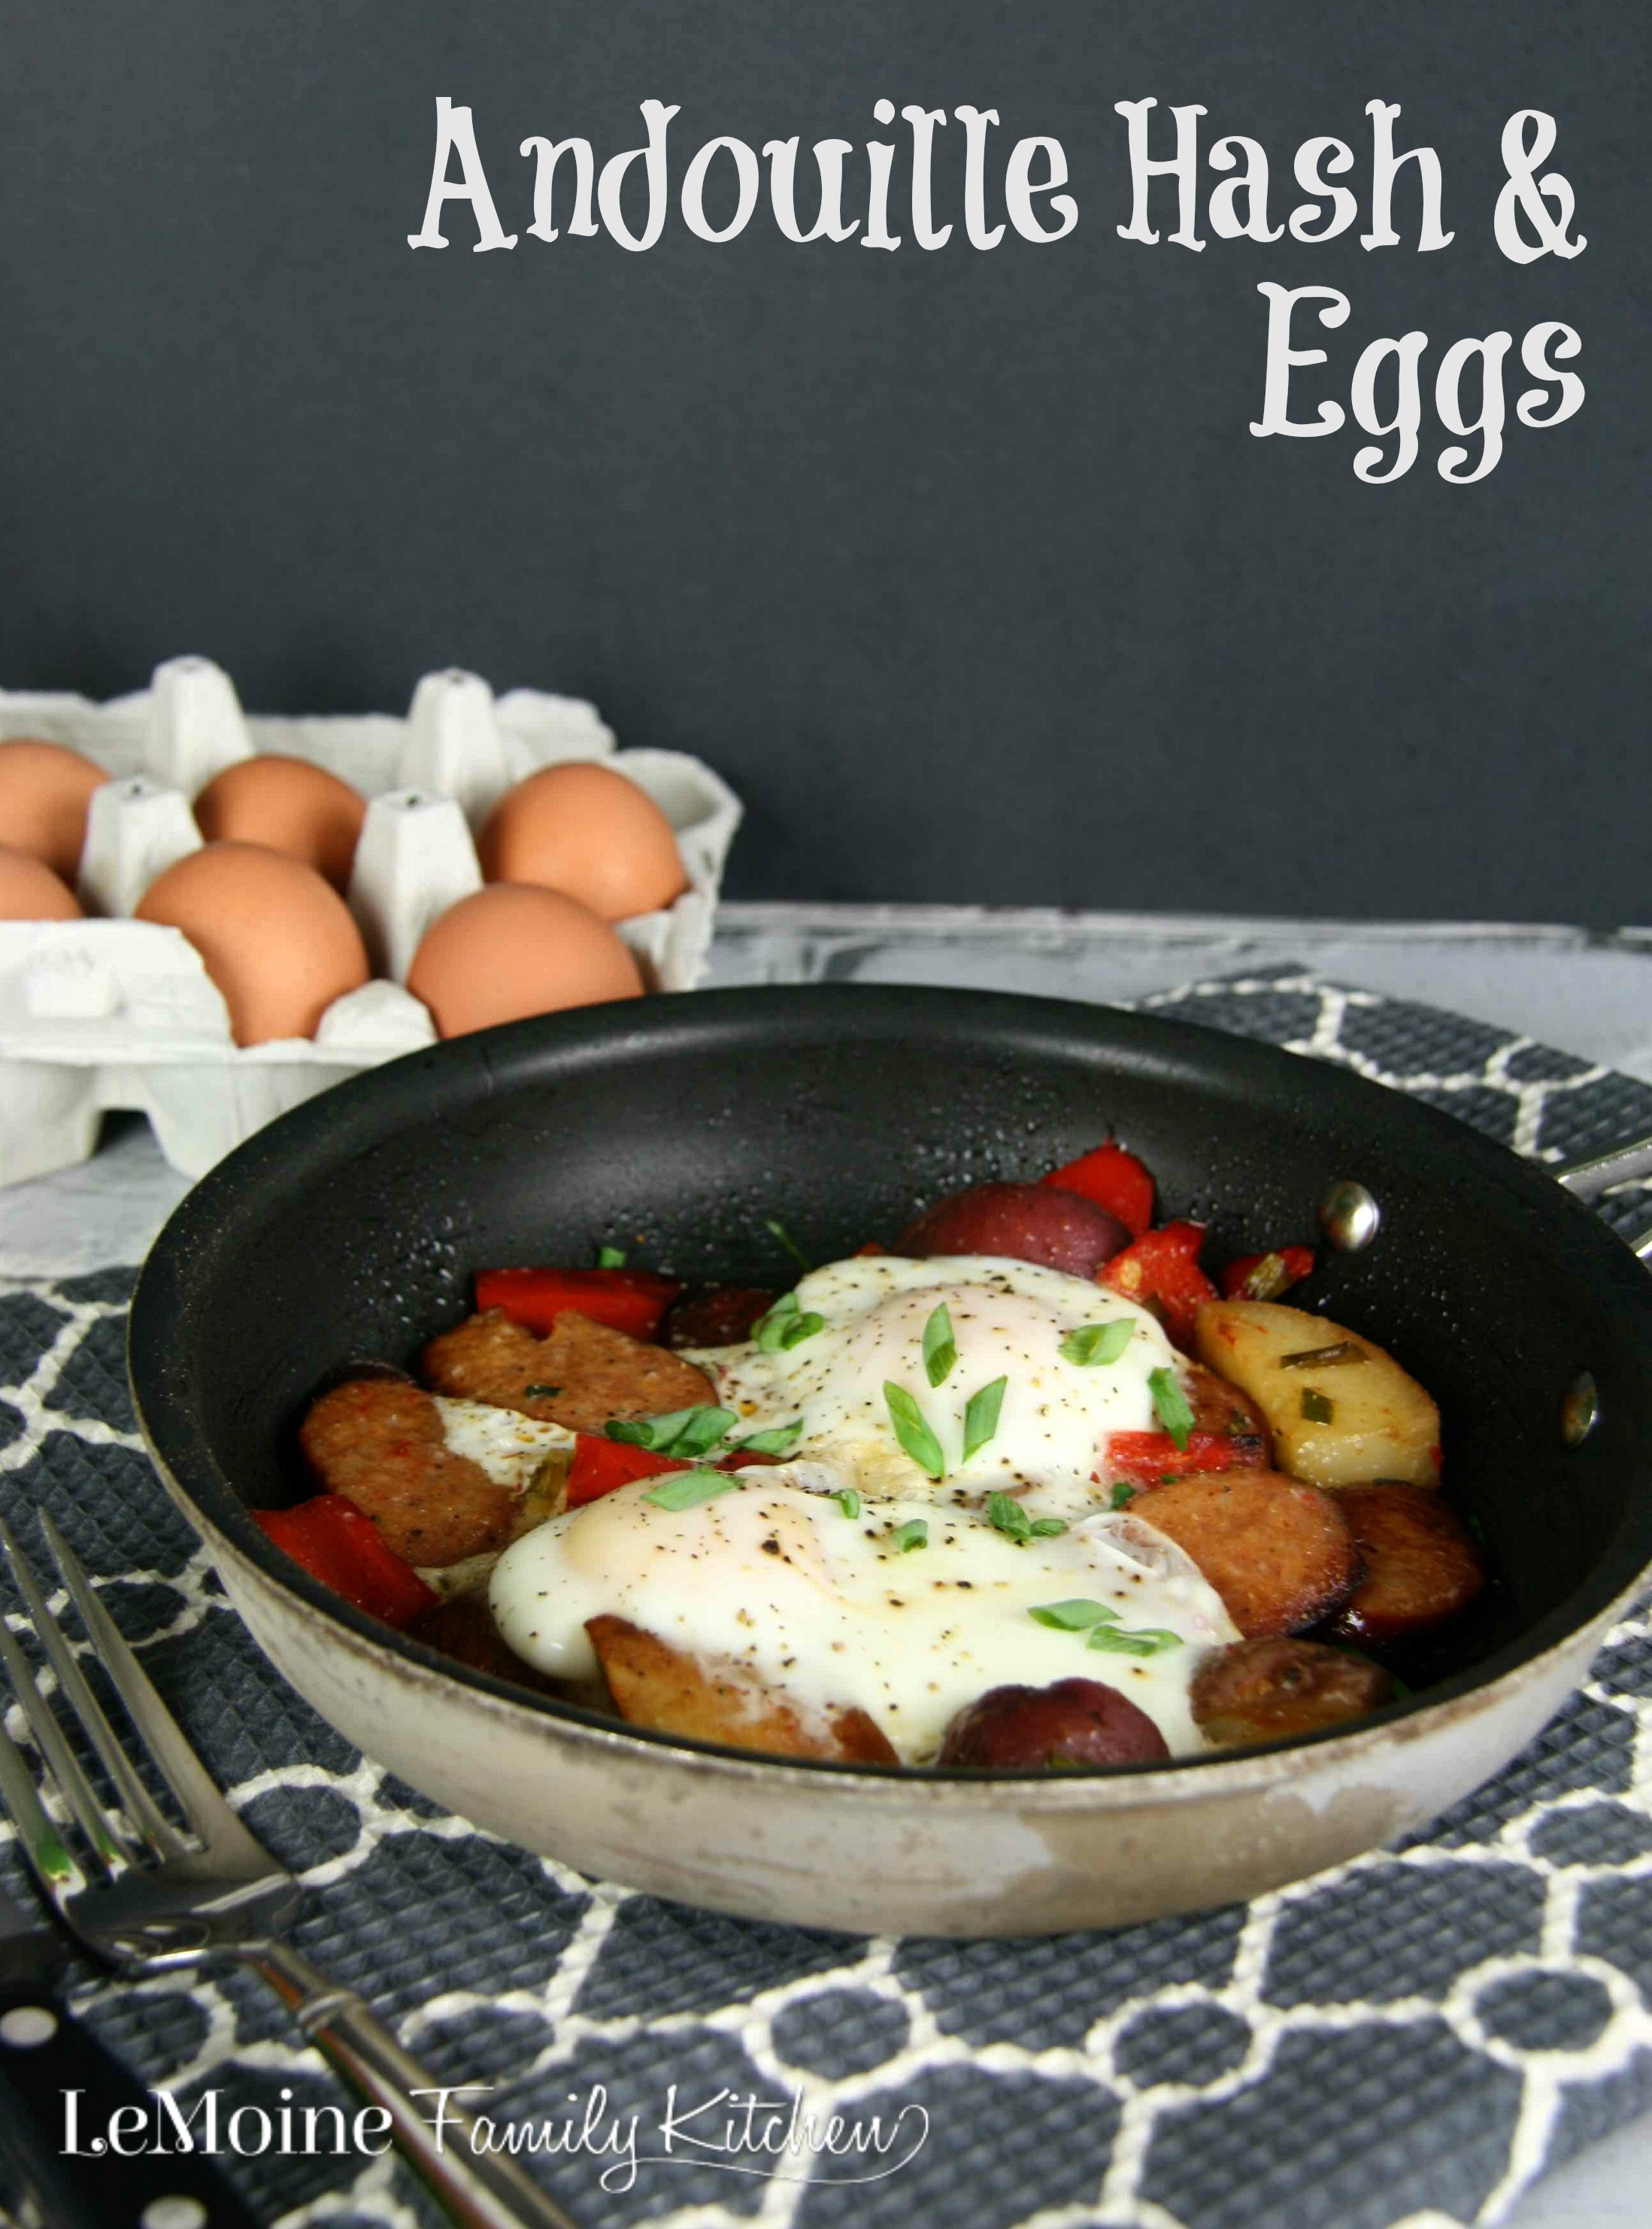 Andouille Hash & Eggs